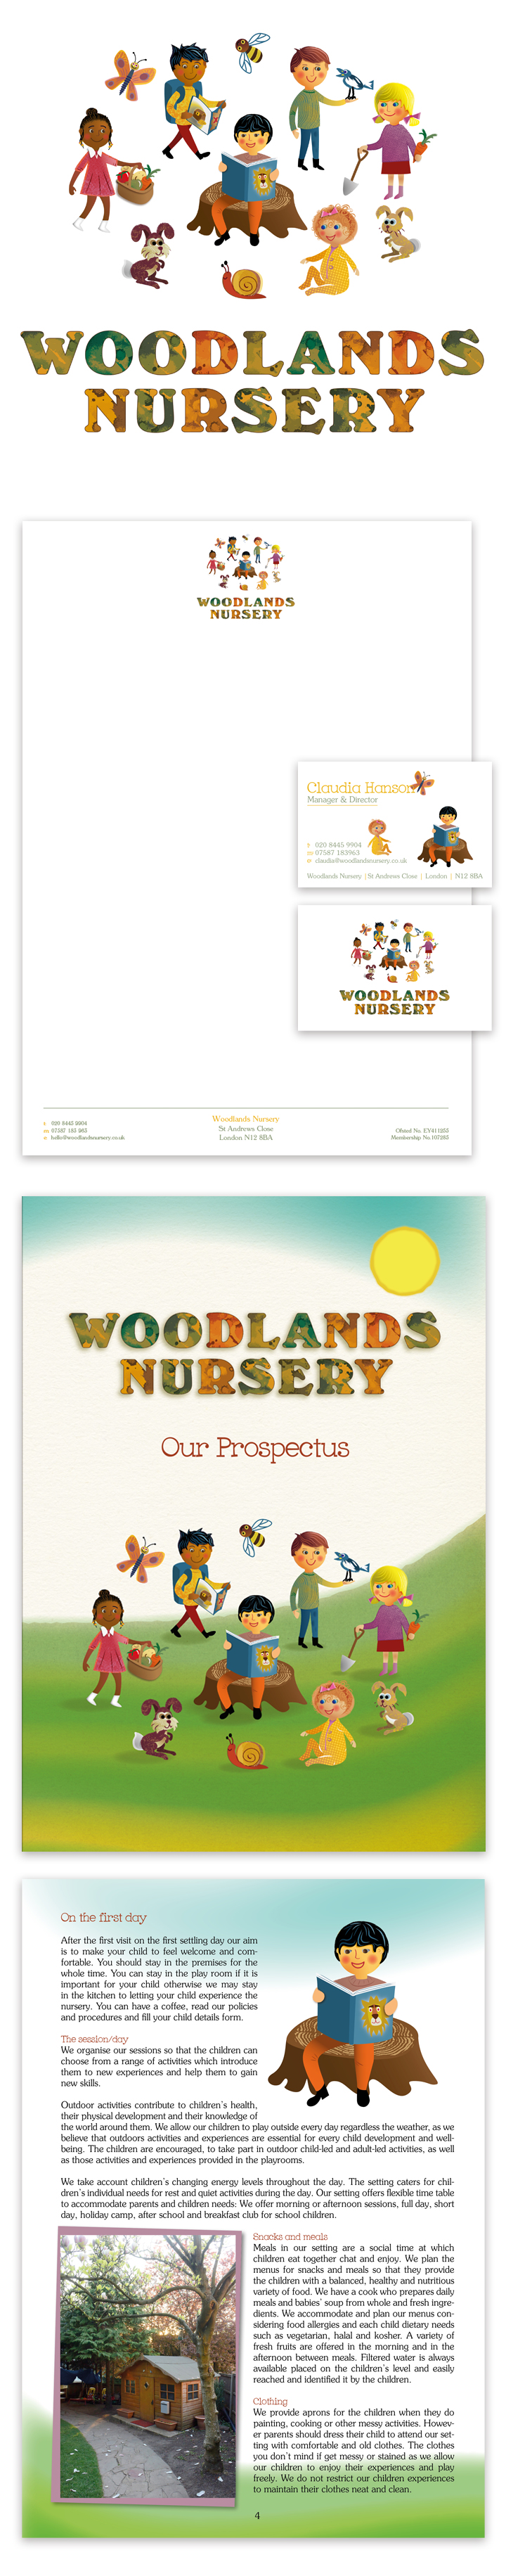 Woodlands Nursery Logo London